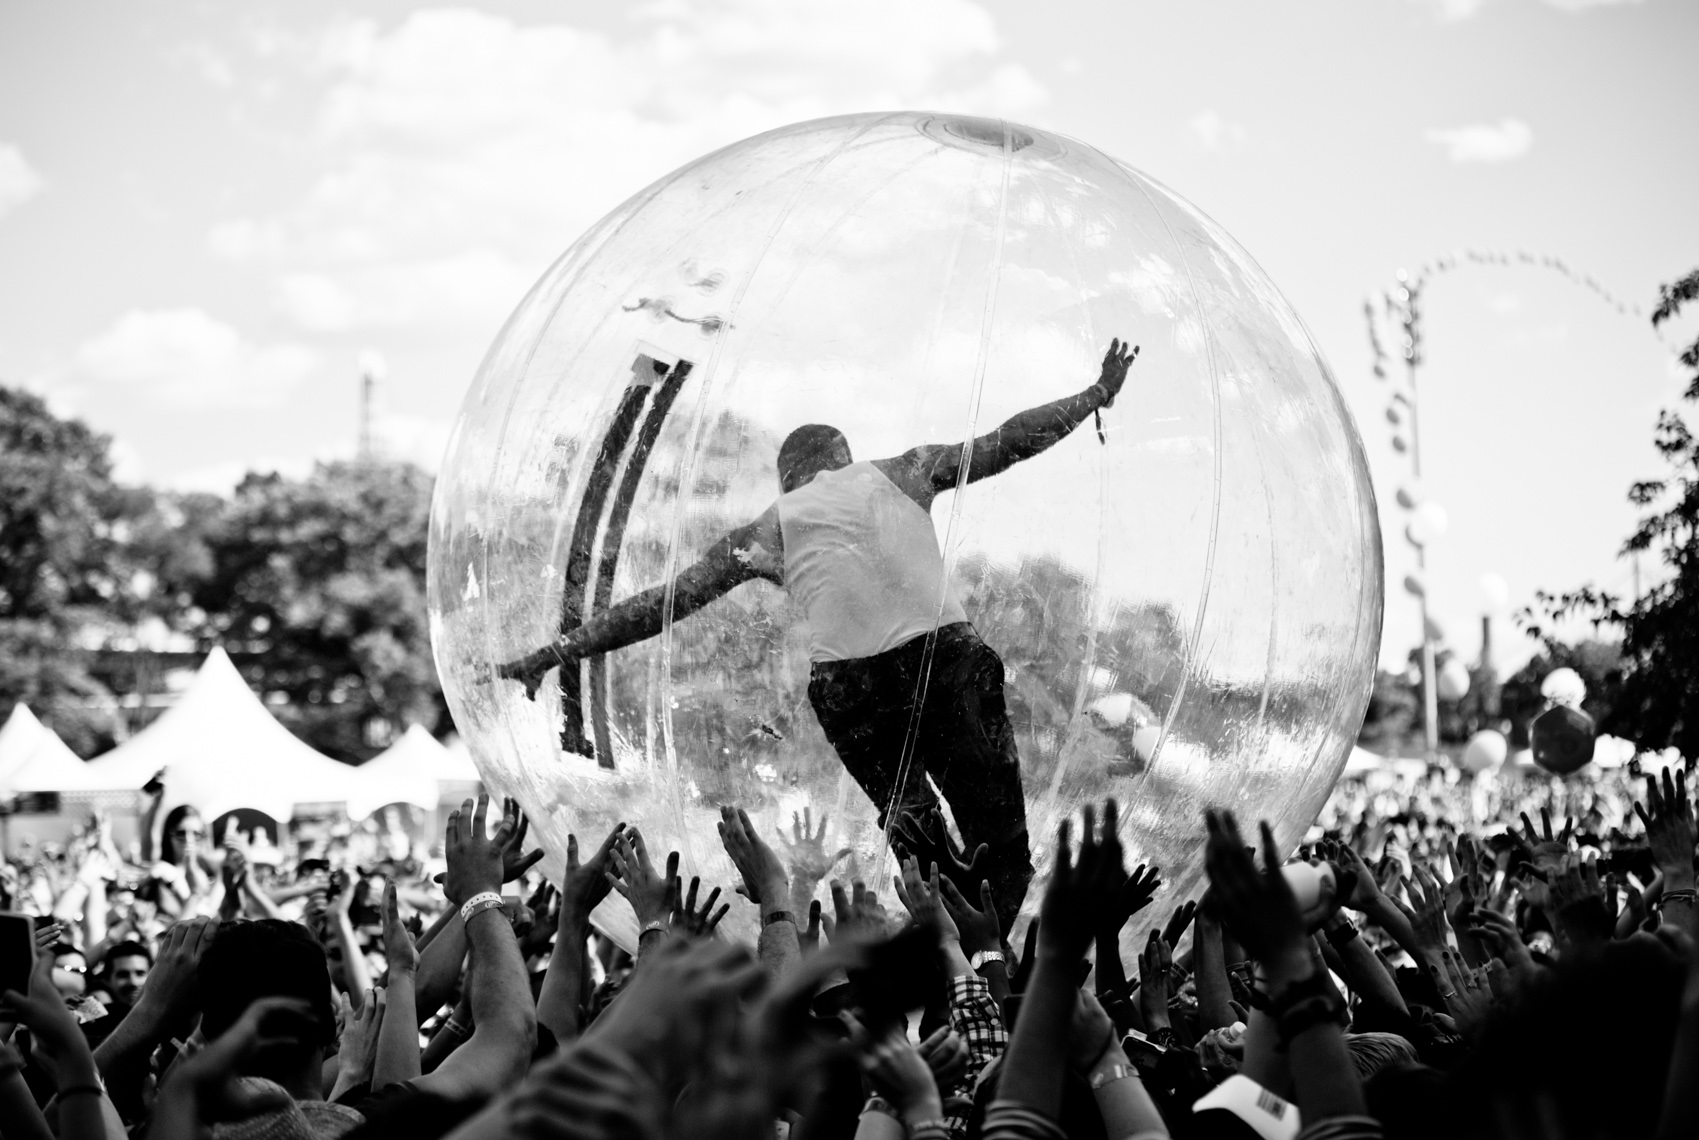 Major Lazer crowdsurfing at Governors Ball Music Festival